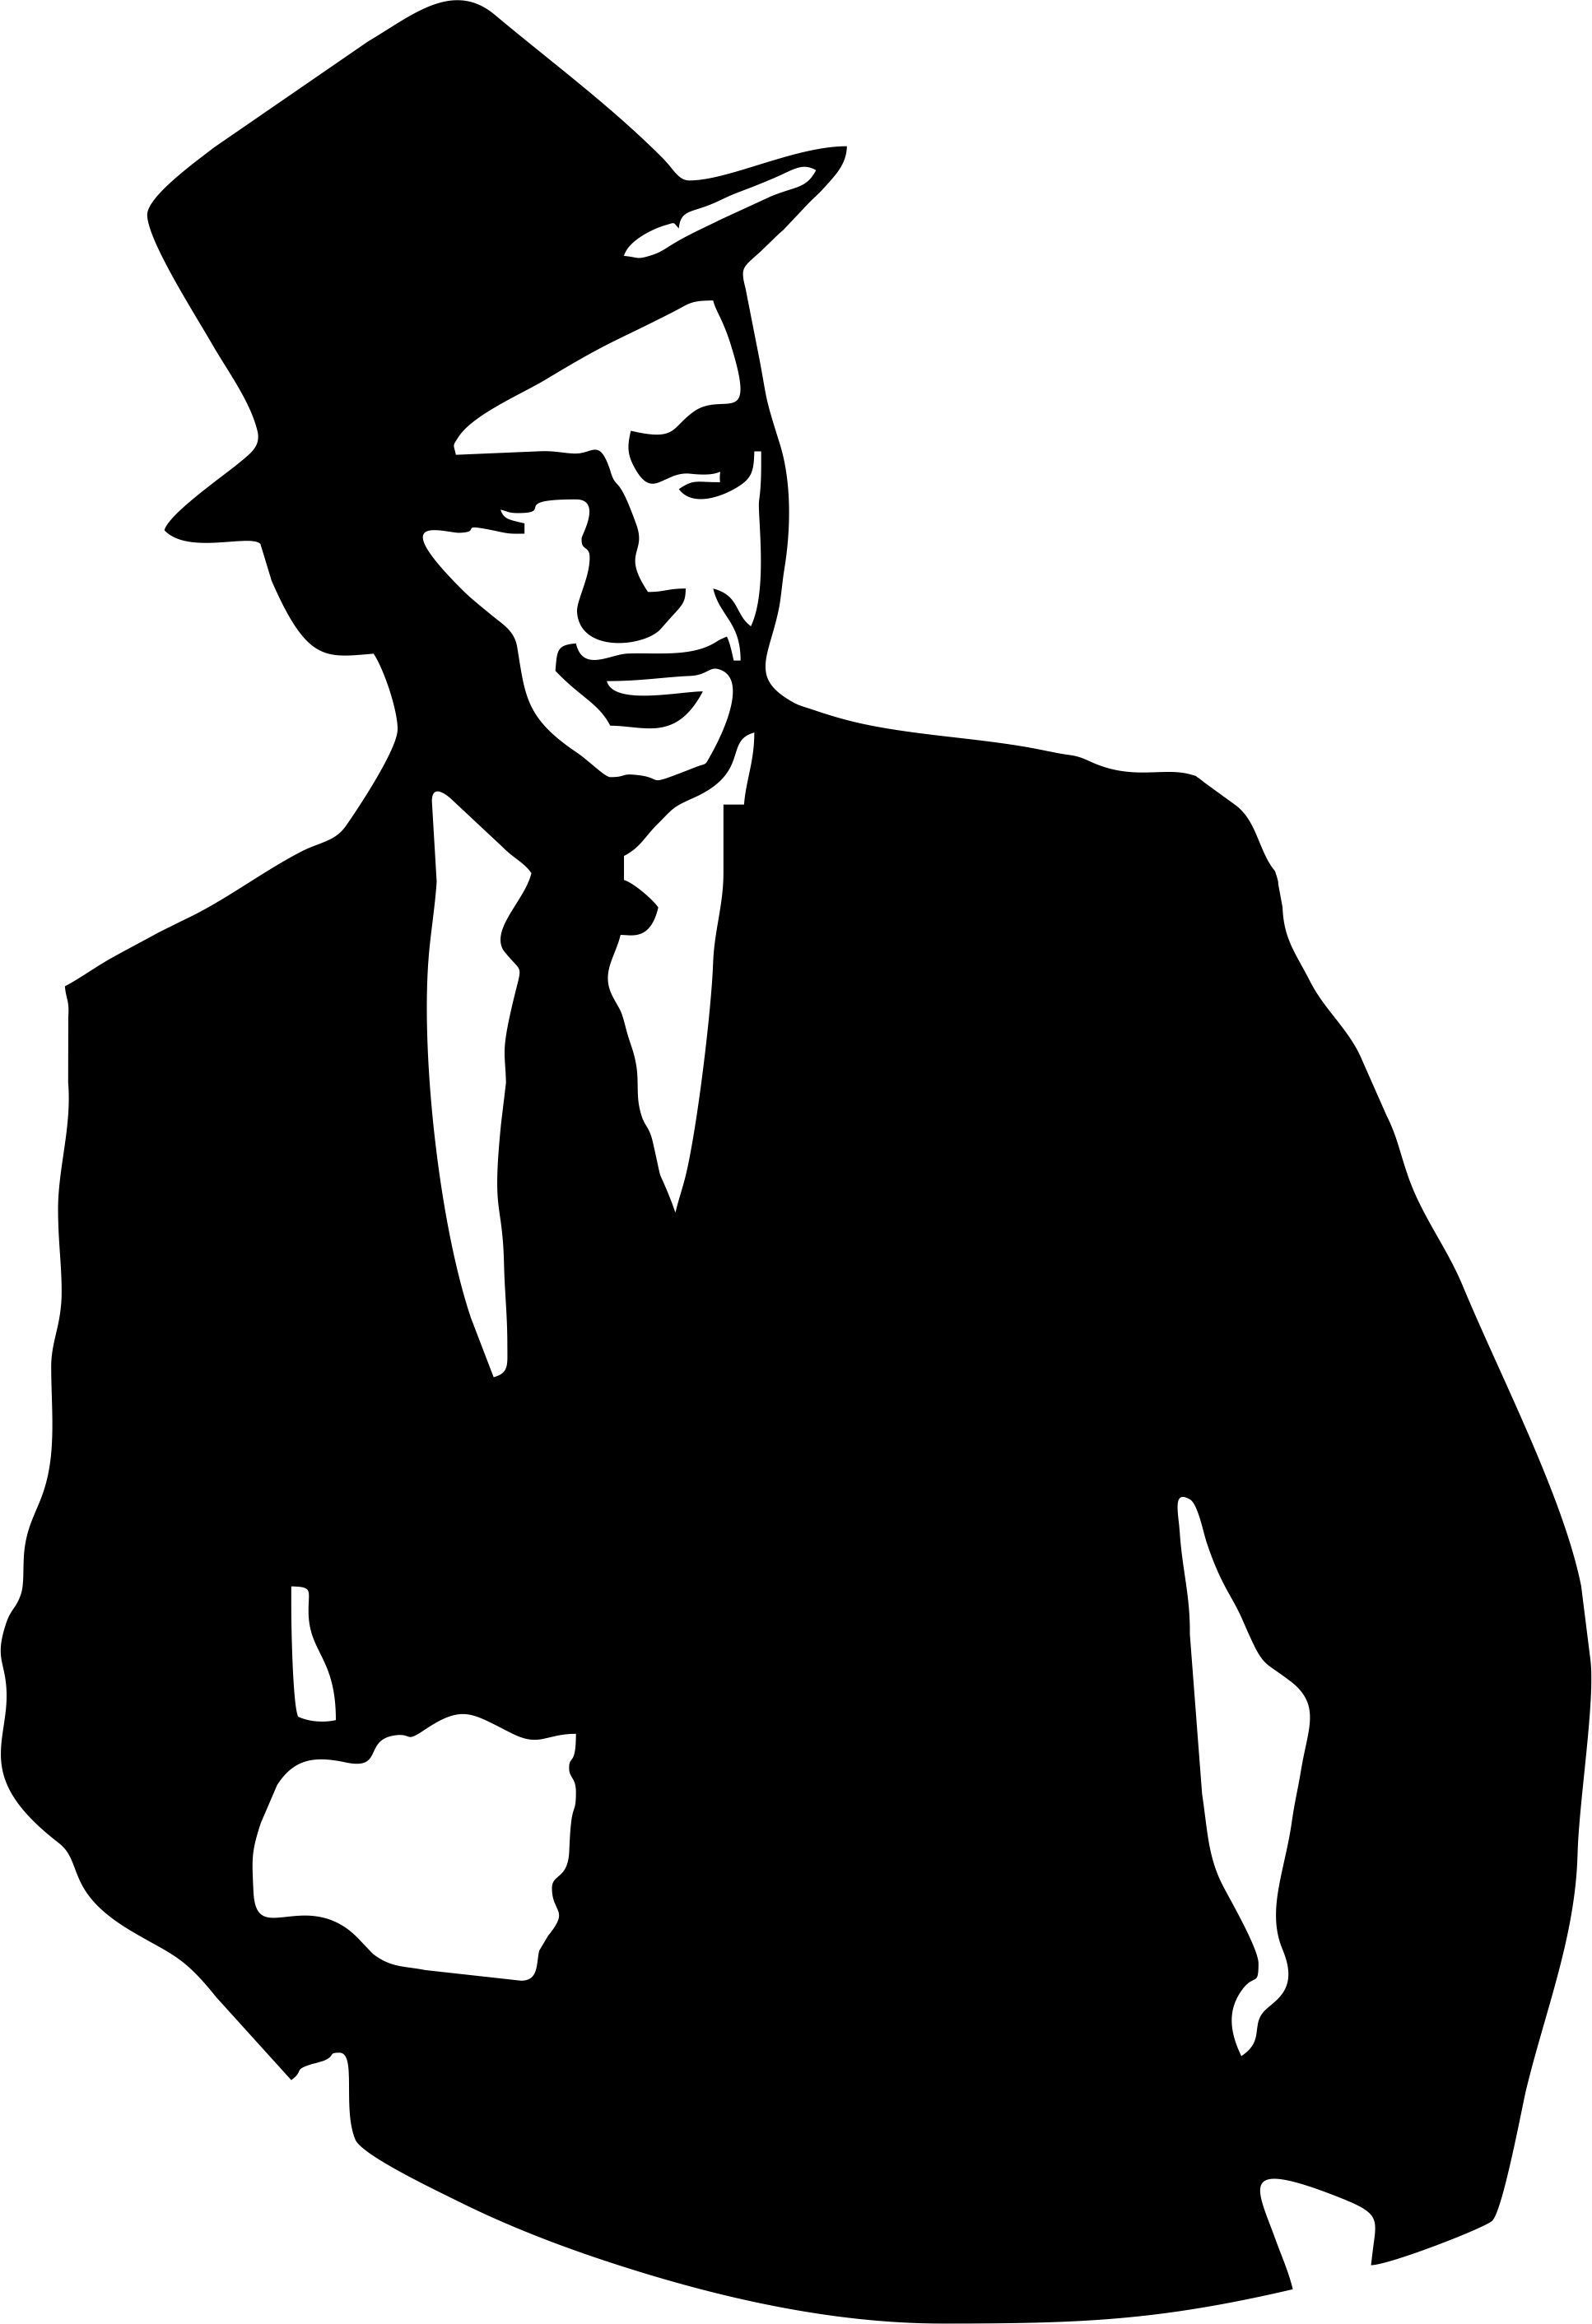 Collection of free download. Frank sinatra clipart